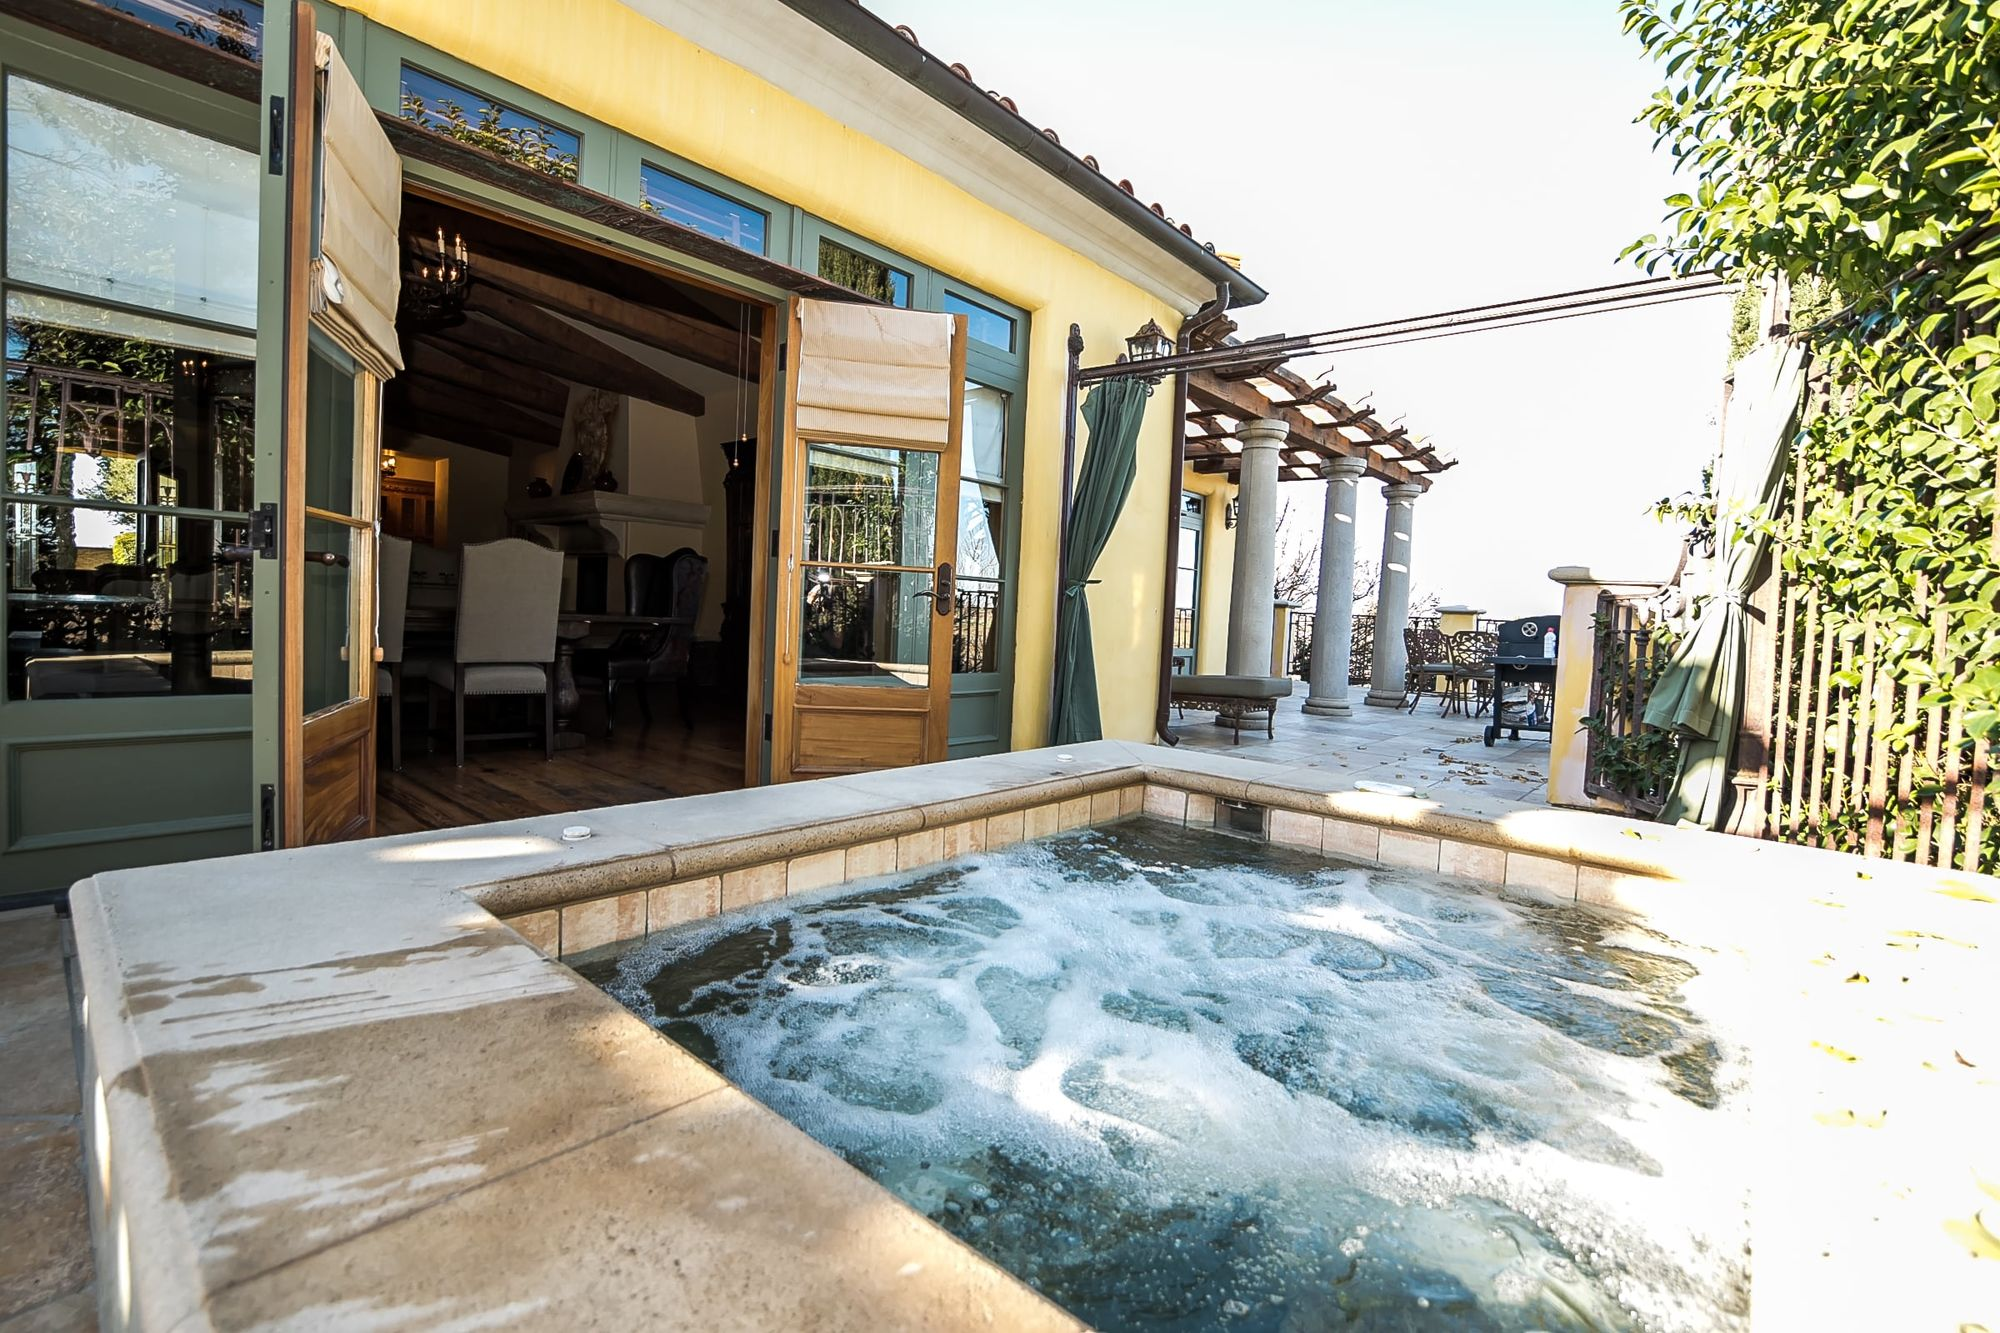 Hot tub bubbling on patio outside open French doors